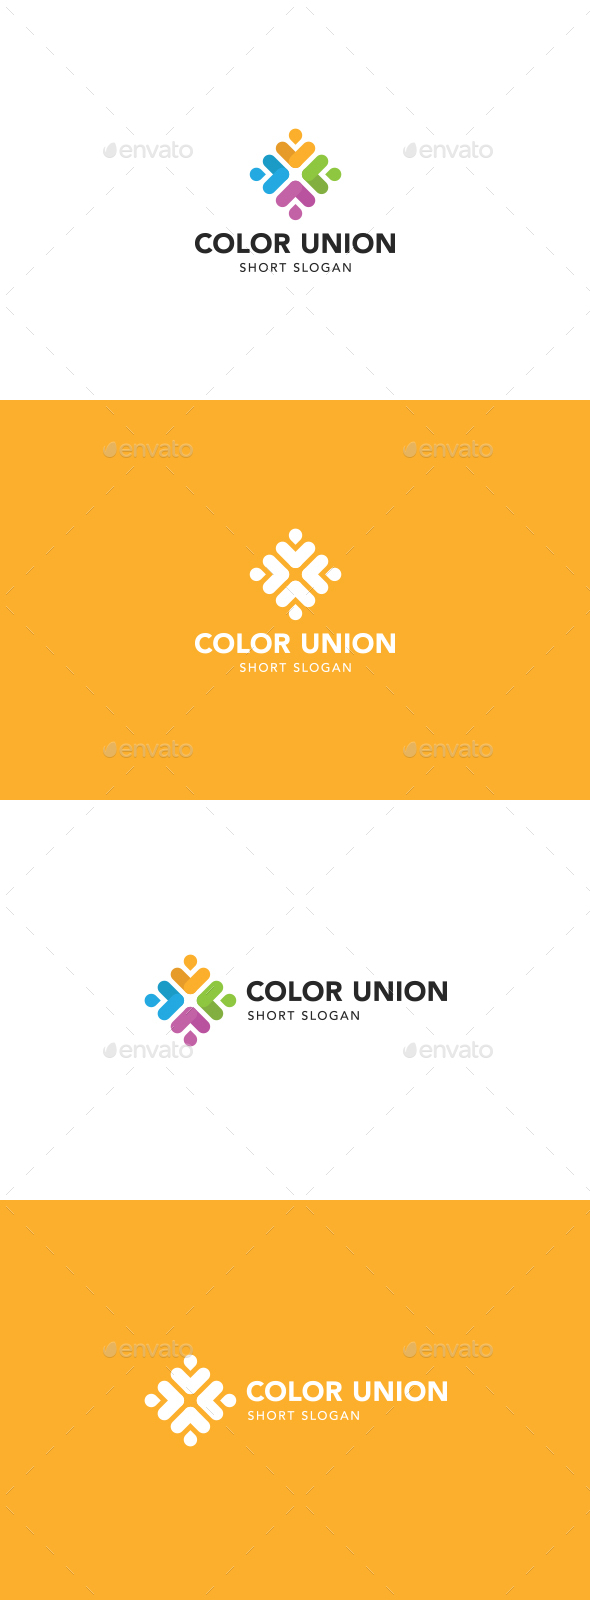 Color Union Logo - Abstract Logo Templates